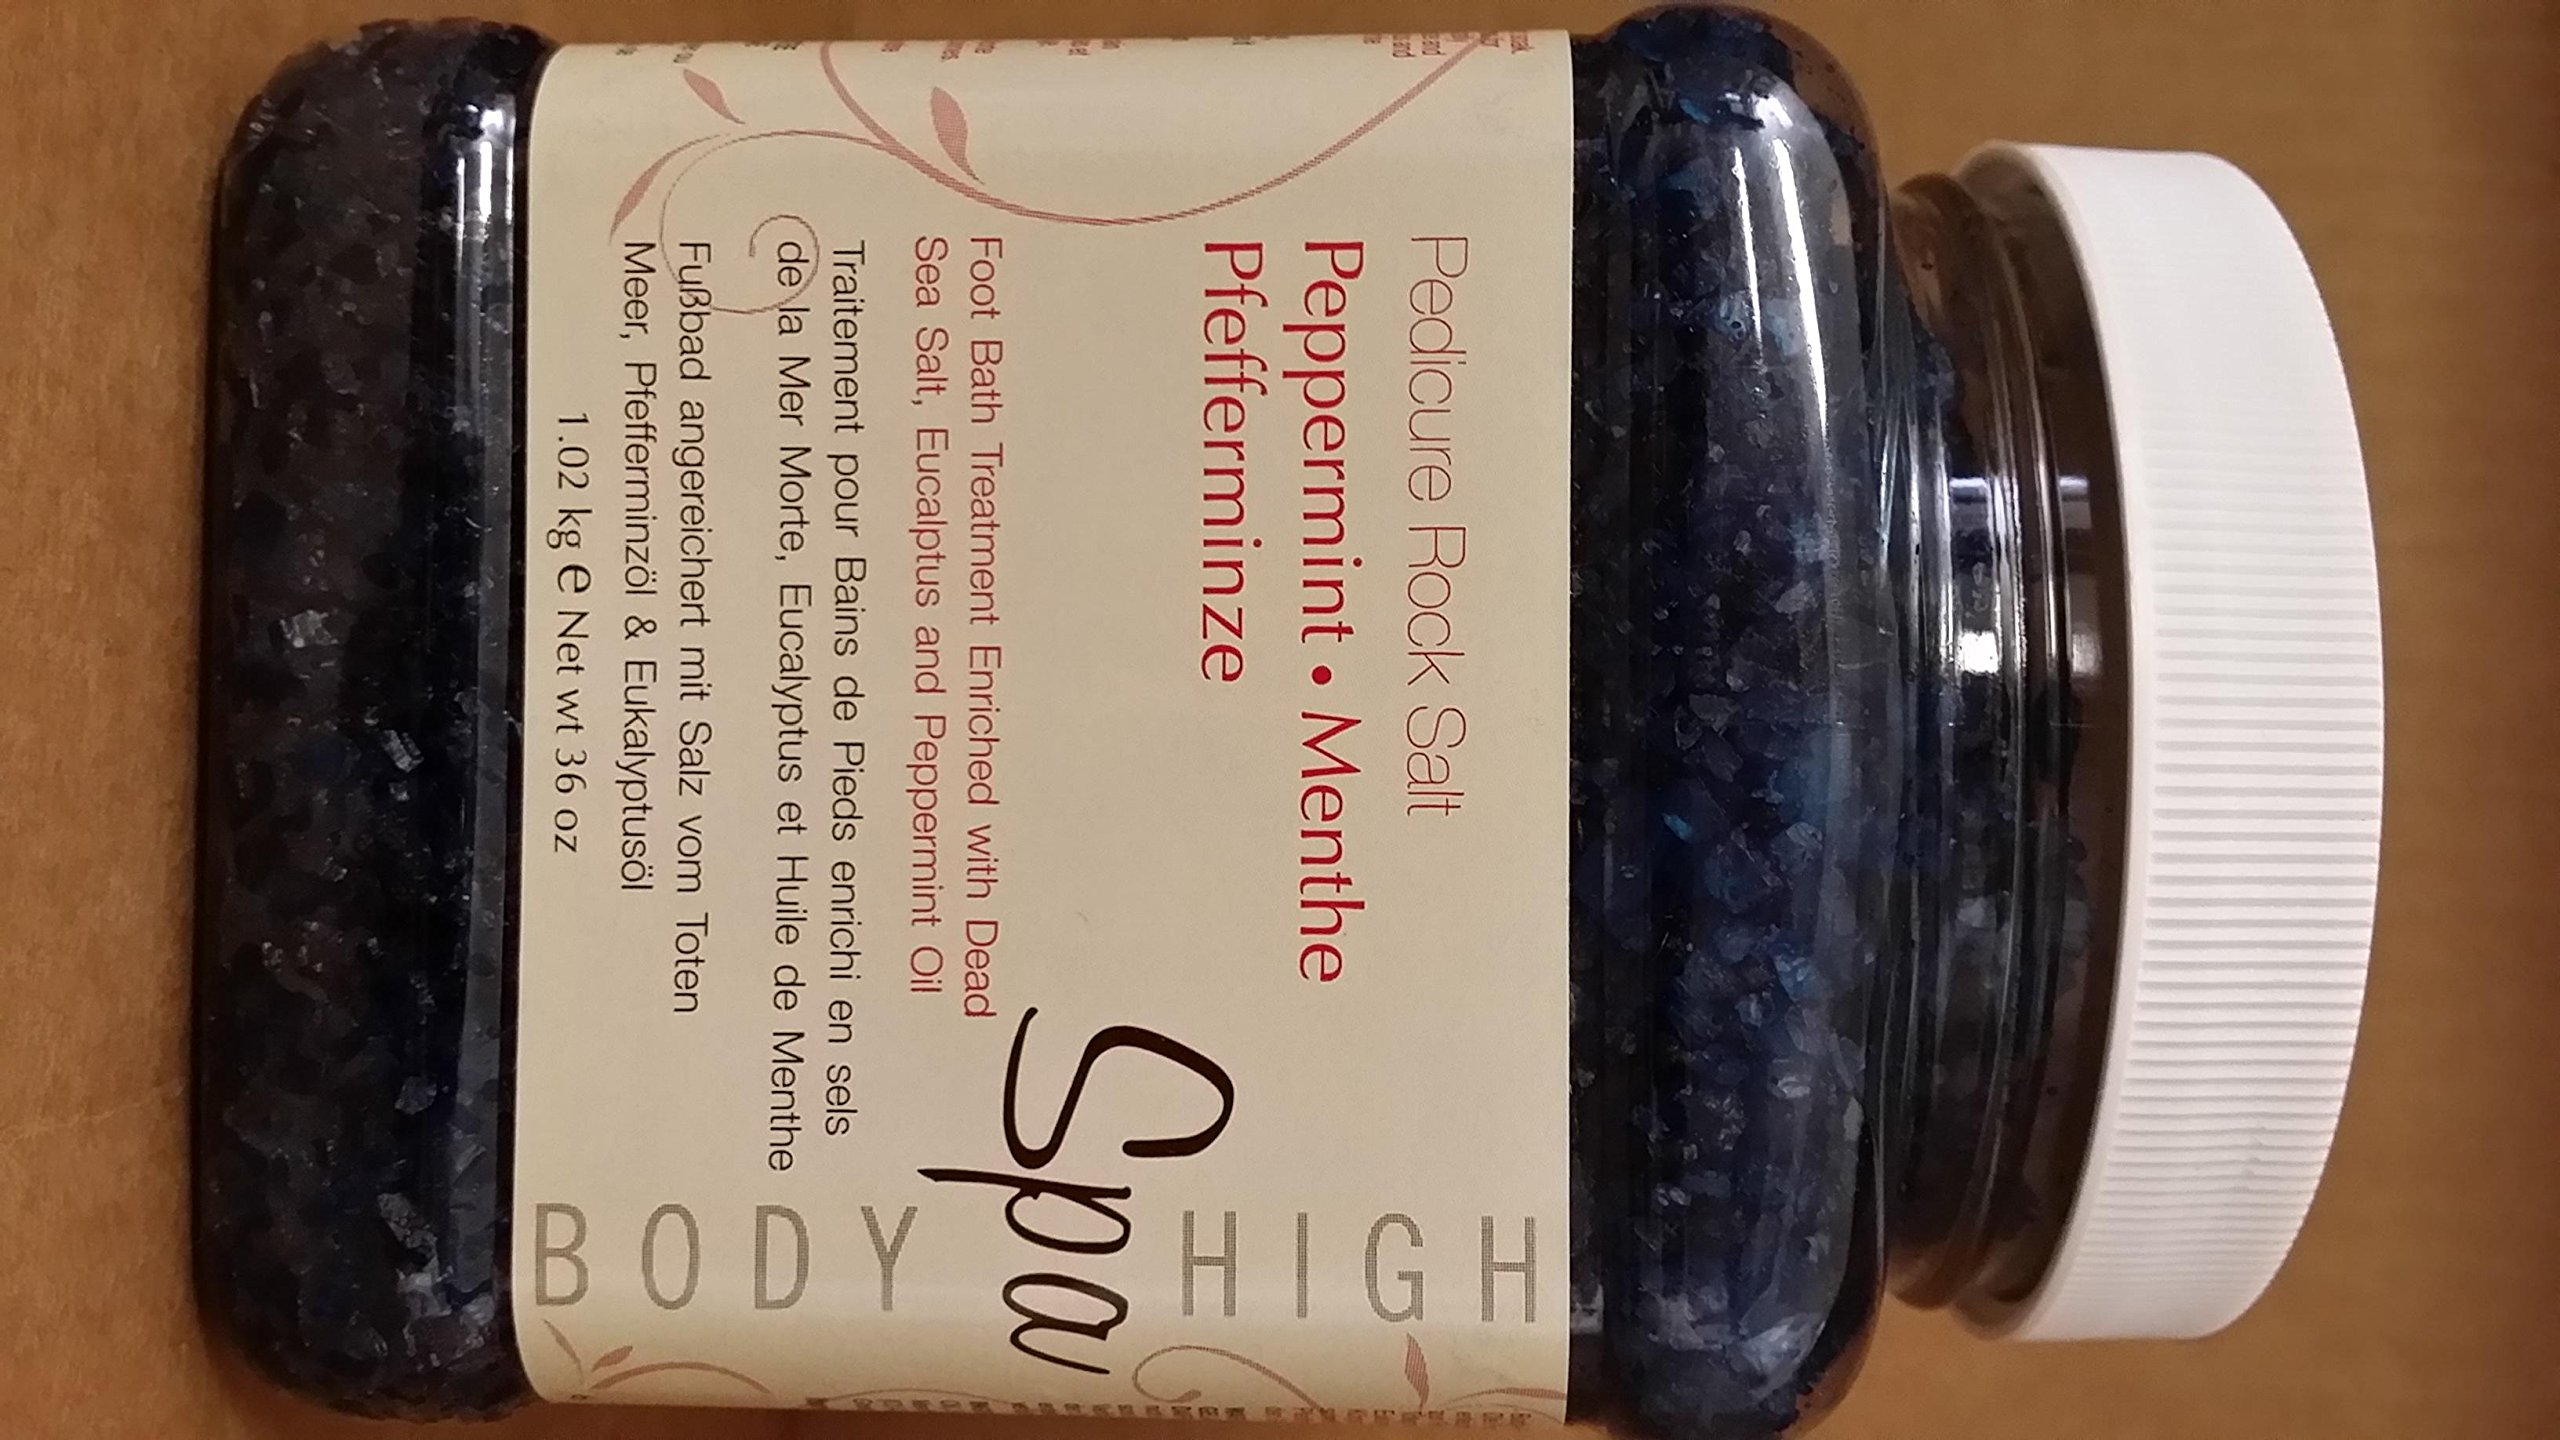 Body High Spa Foot Pedicure Rock Salt PEPPERMINT 36 oz by Body Spa High